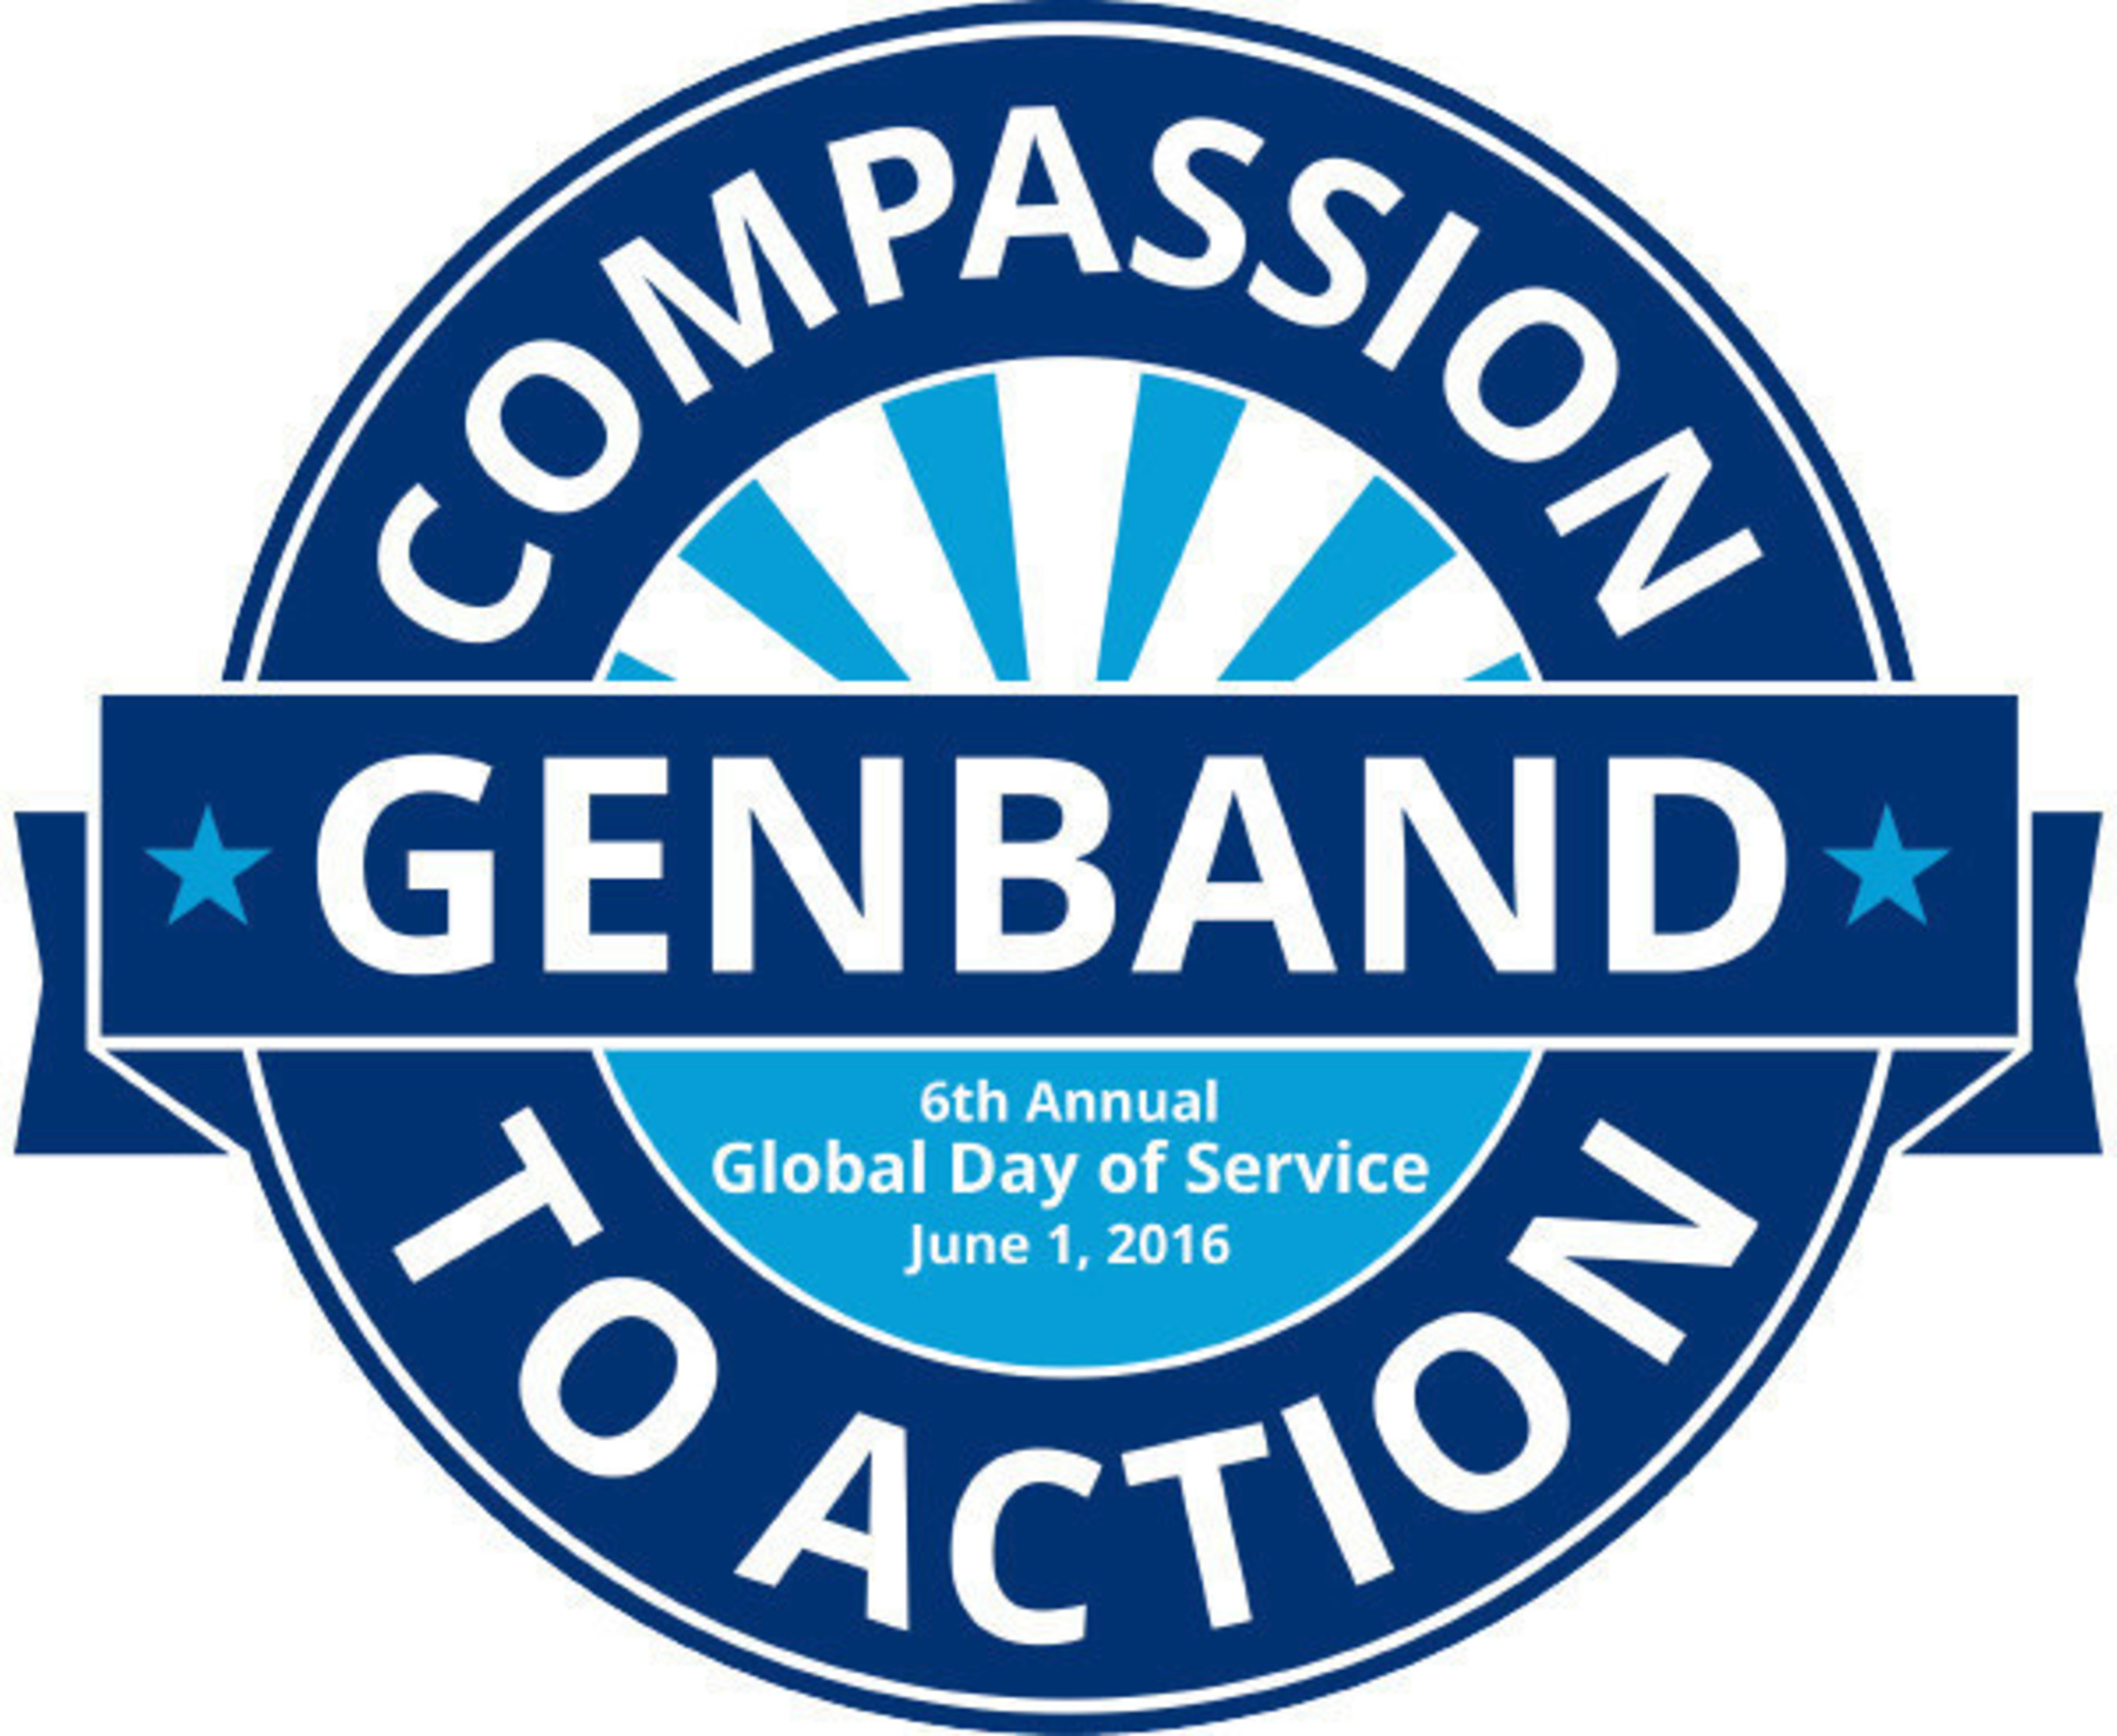 GENBAND Employees Participate in Volunteer Activities around the World during 6th Annual Global Day of Service